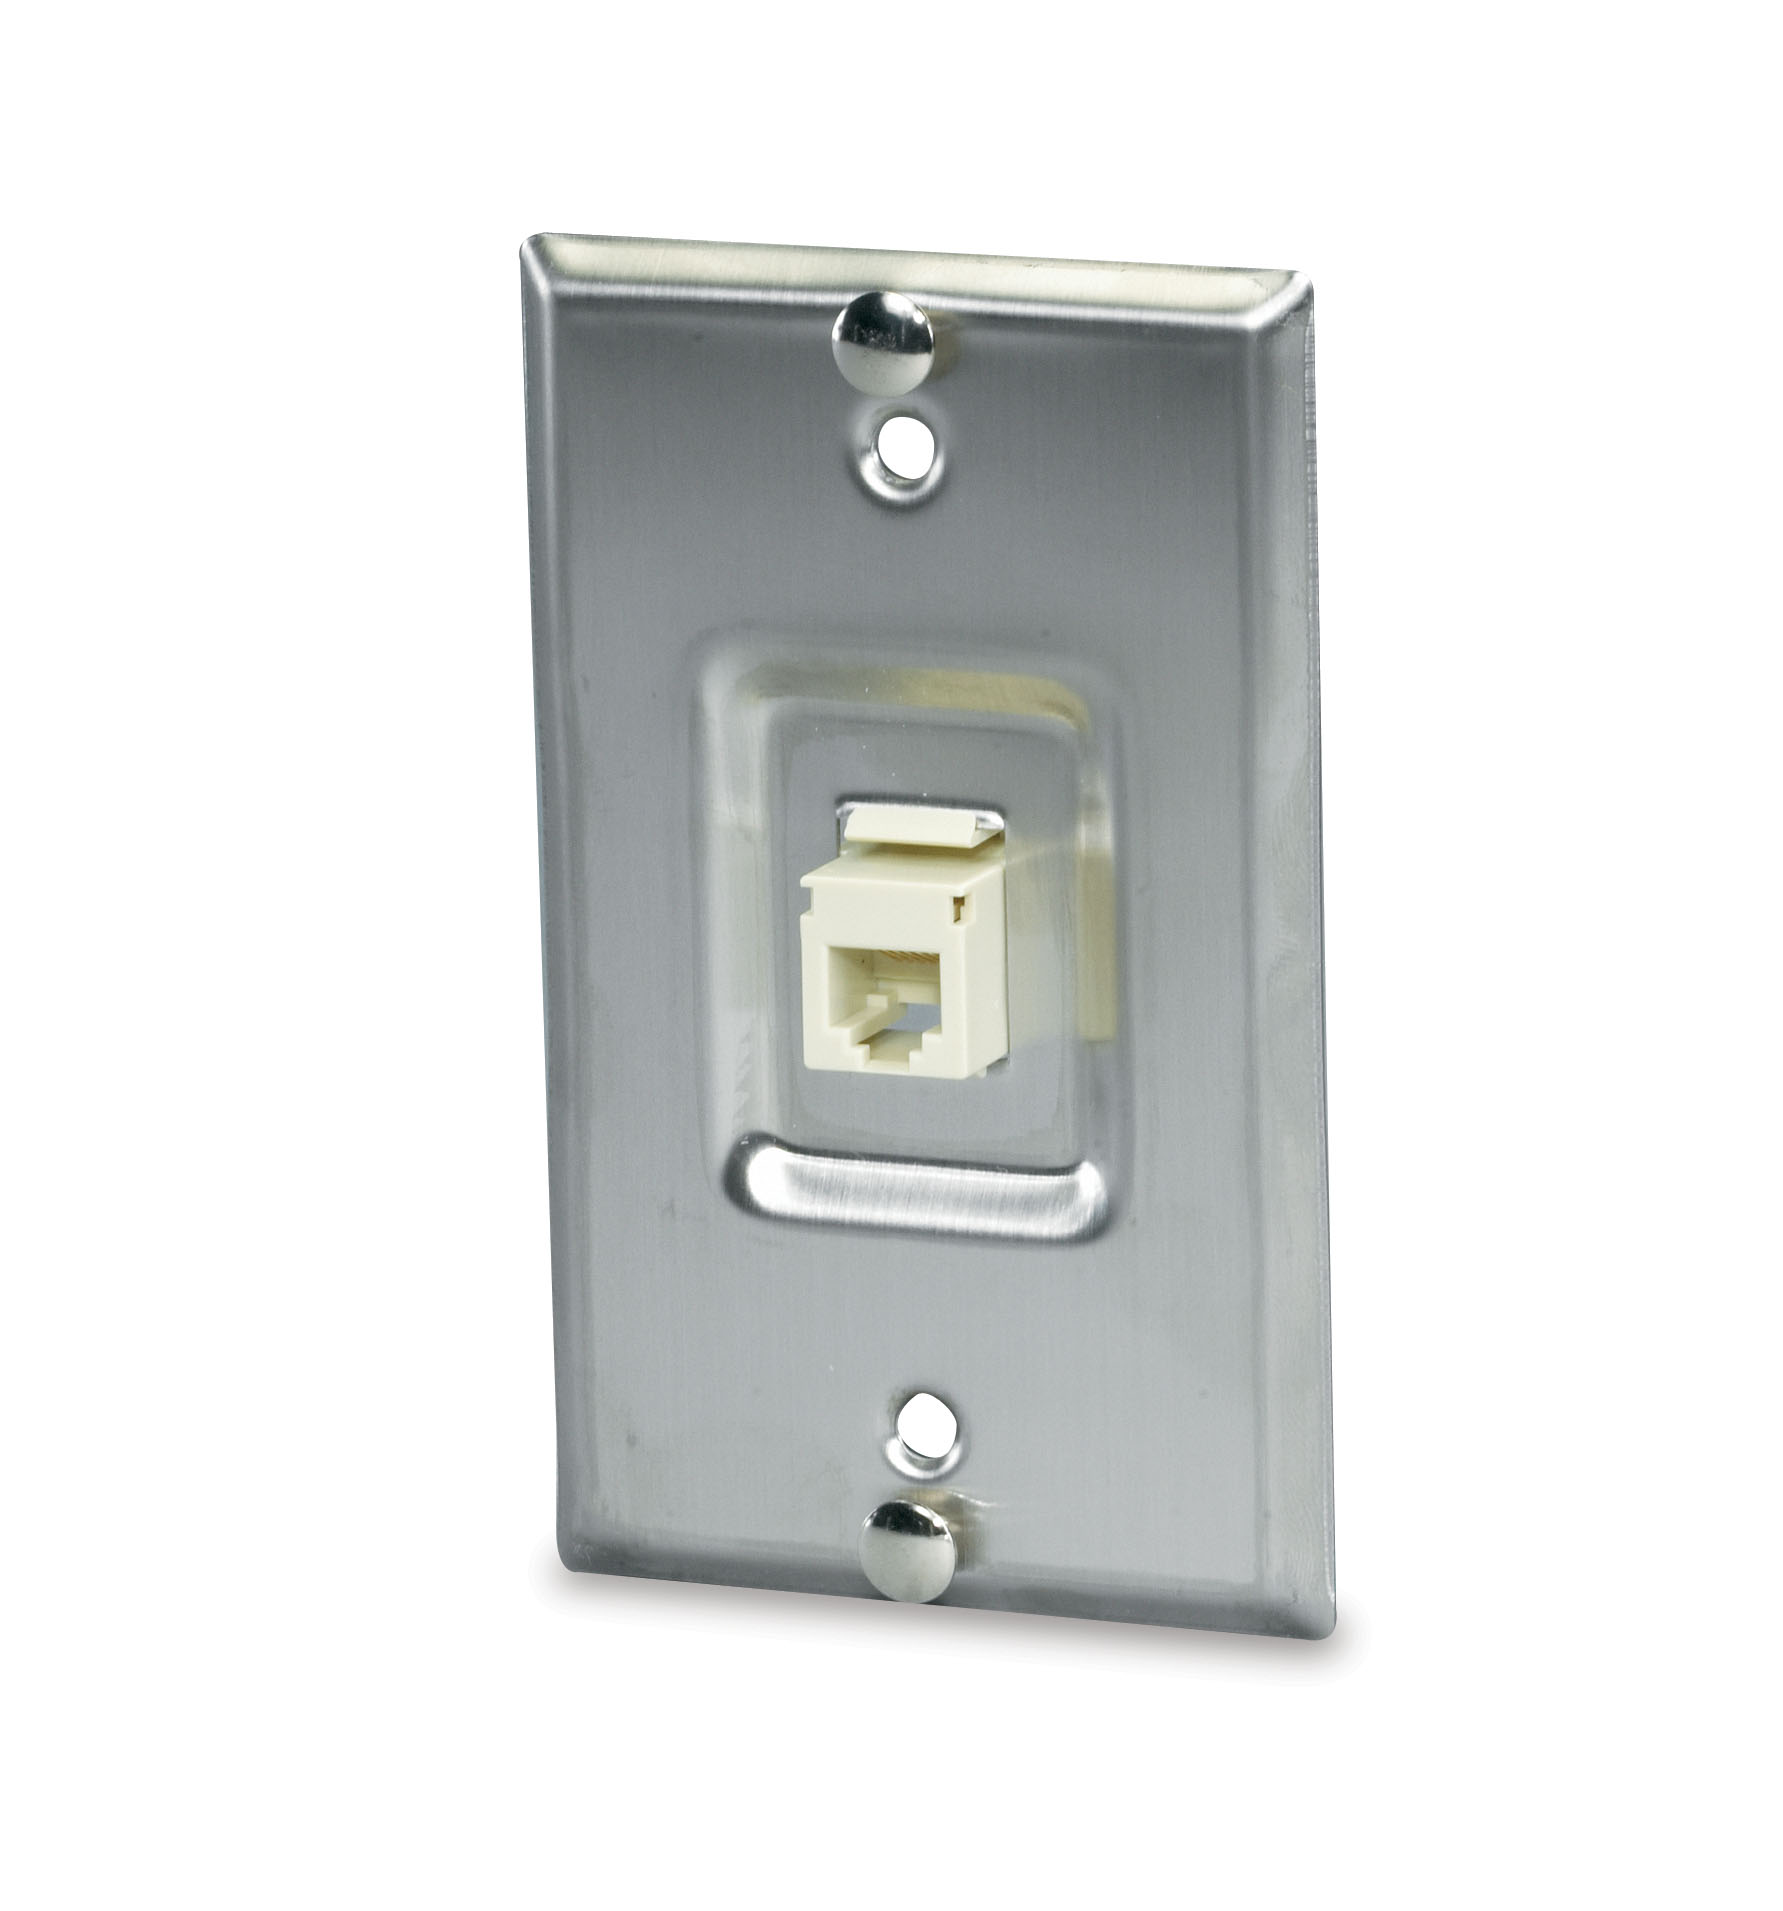 SGM SSKF-1P SGM 1-PORT STAINLESS WALL PHONE PLATE